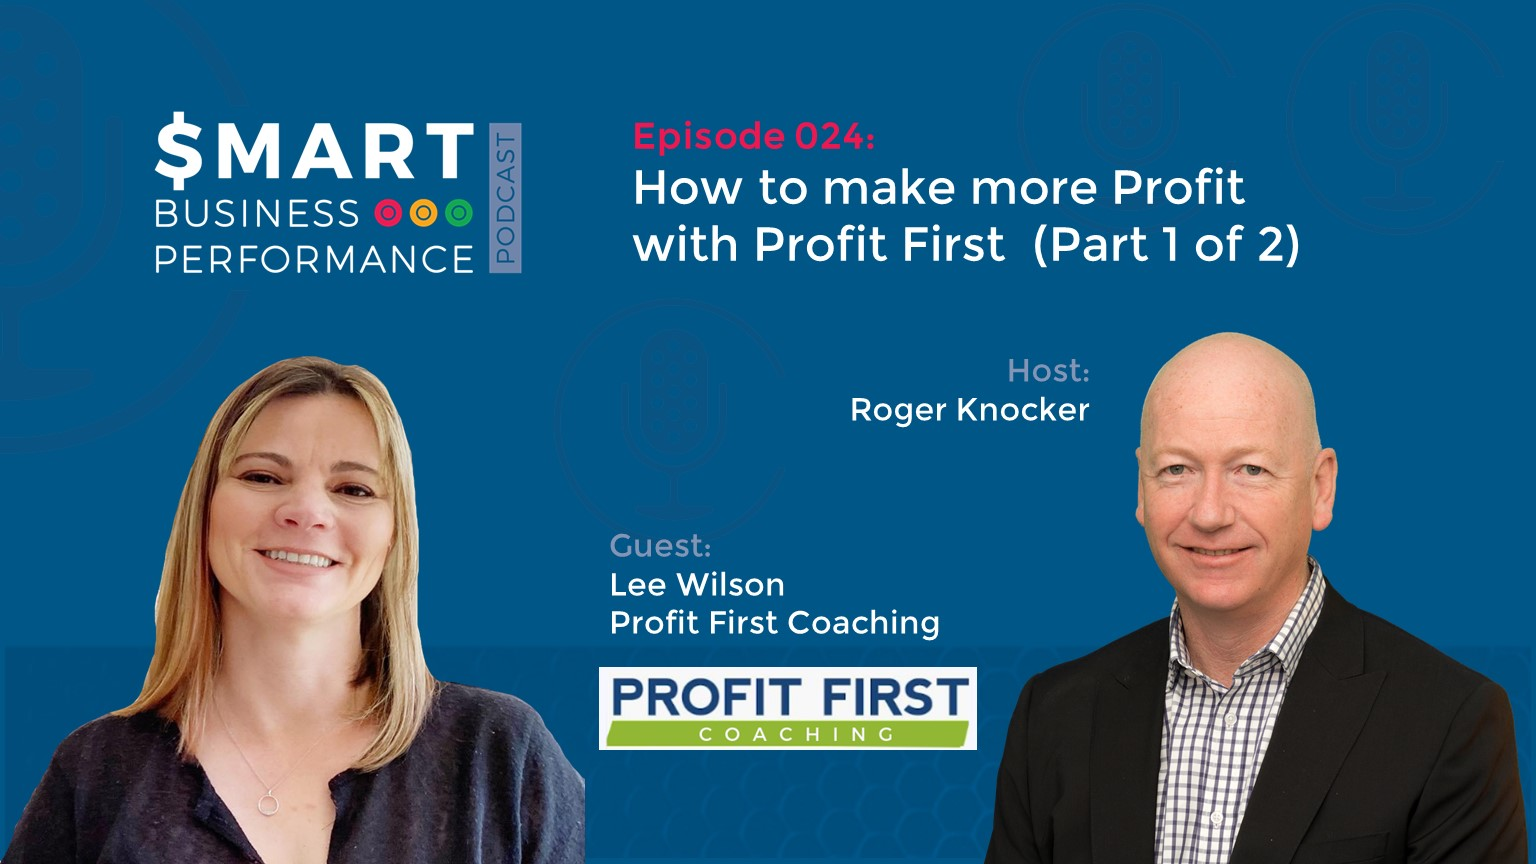 SBP024 How to make more Profit with Profit FIrst Part 1